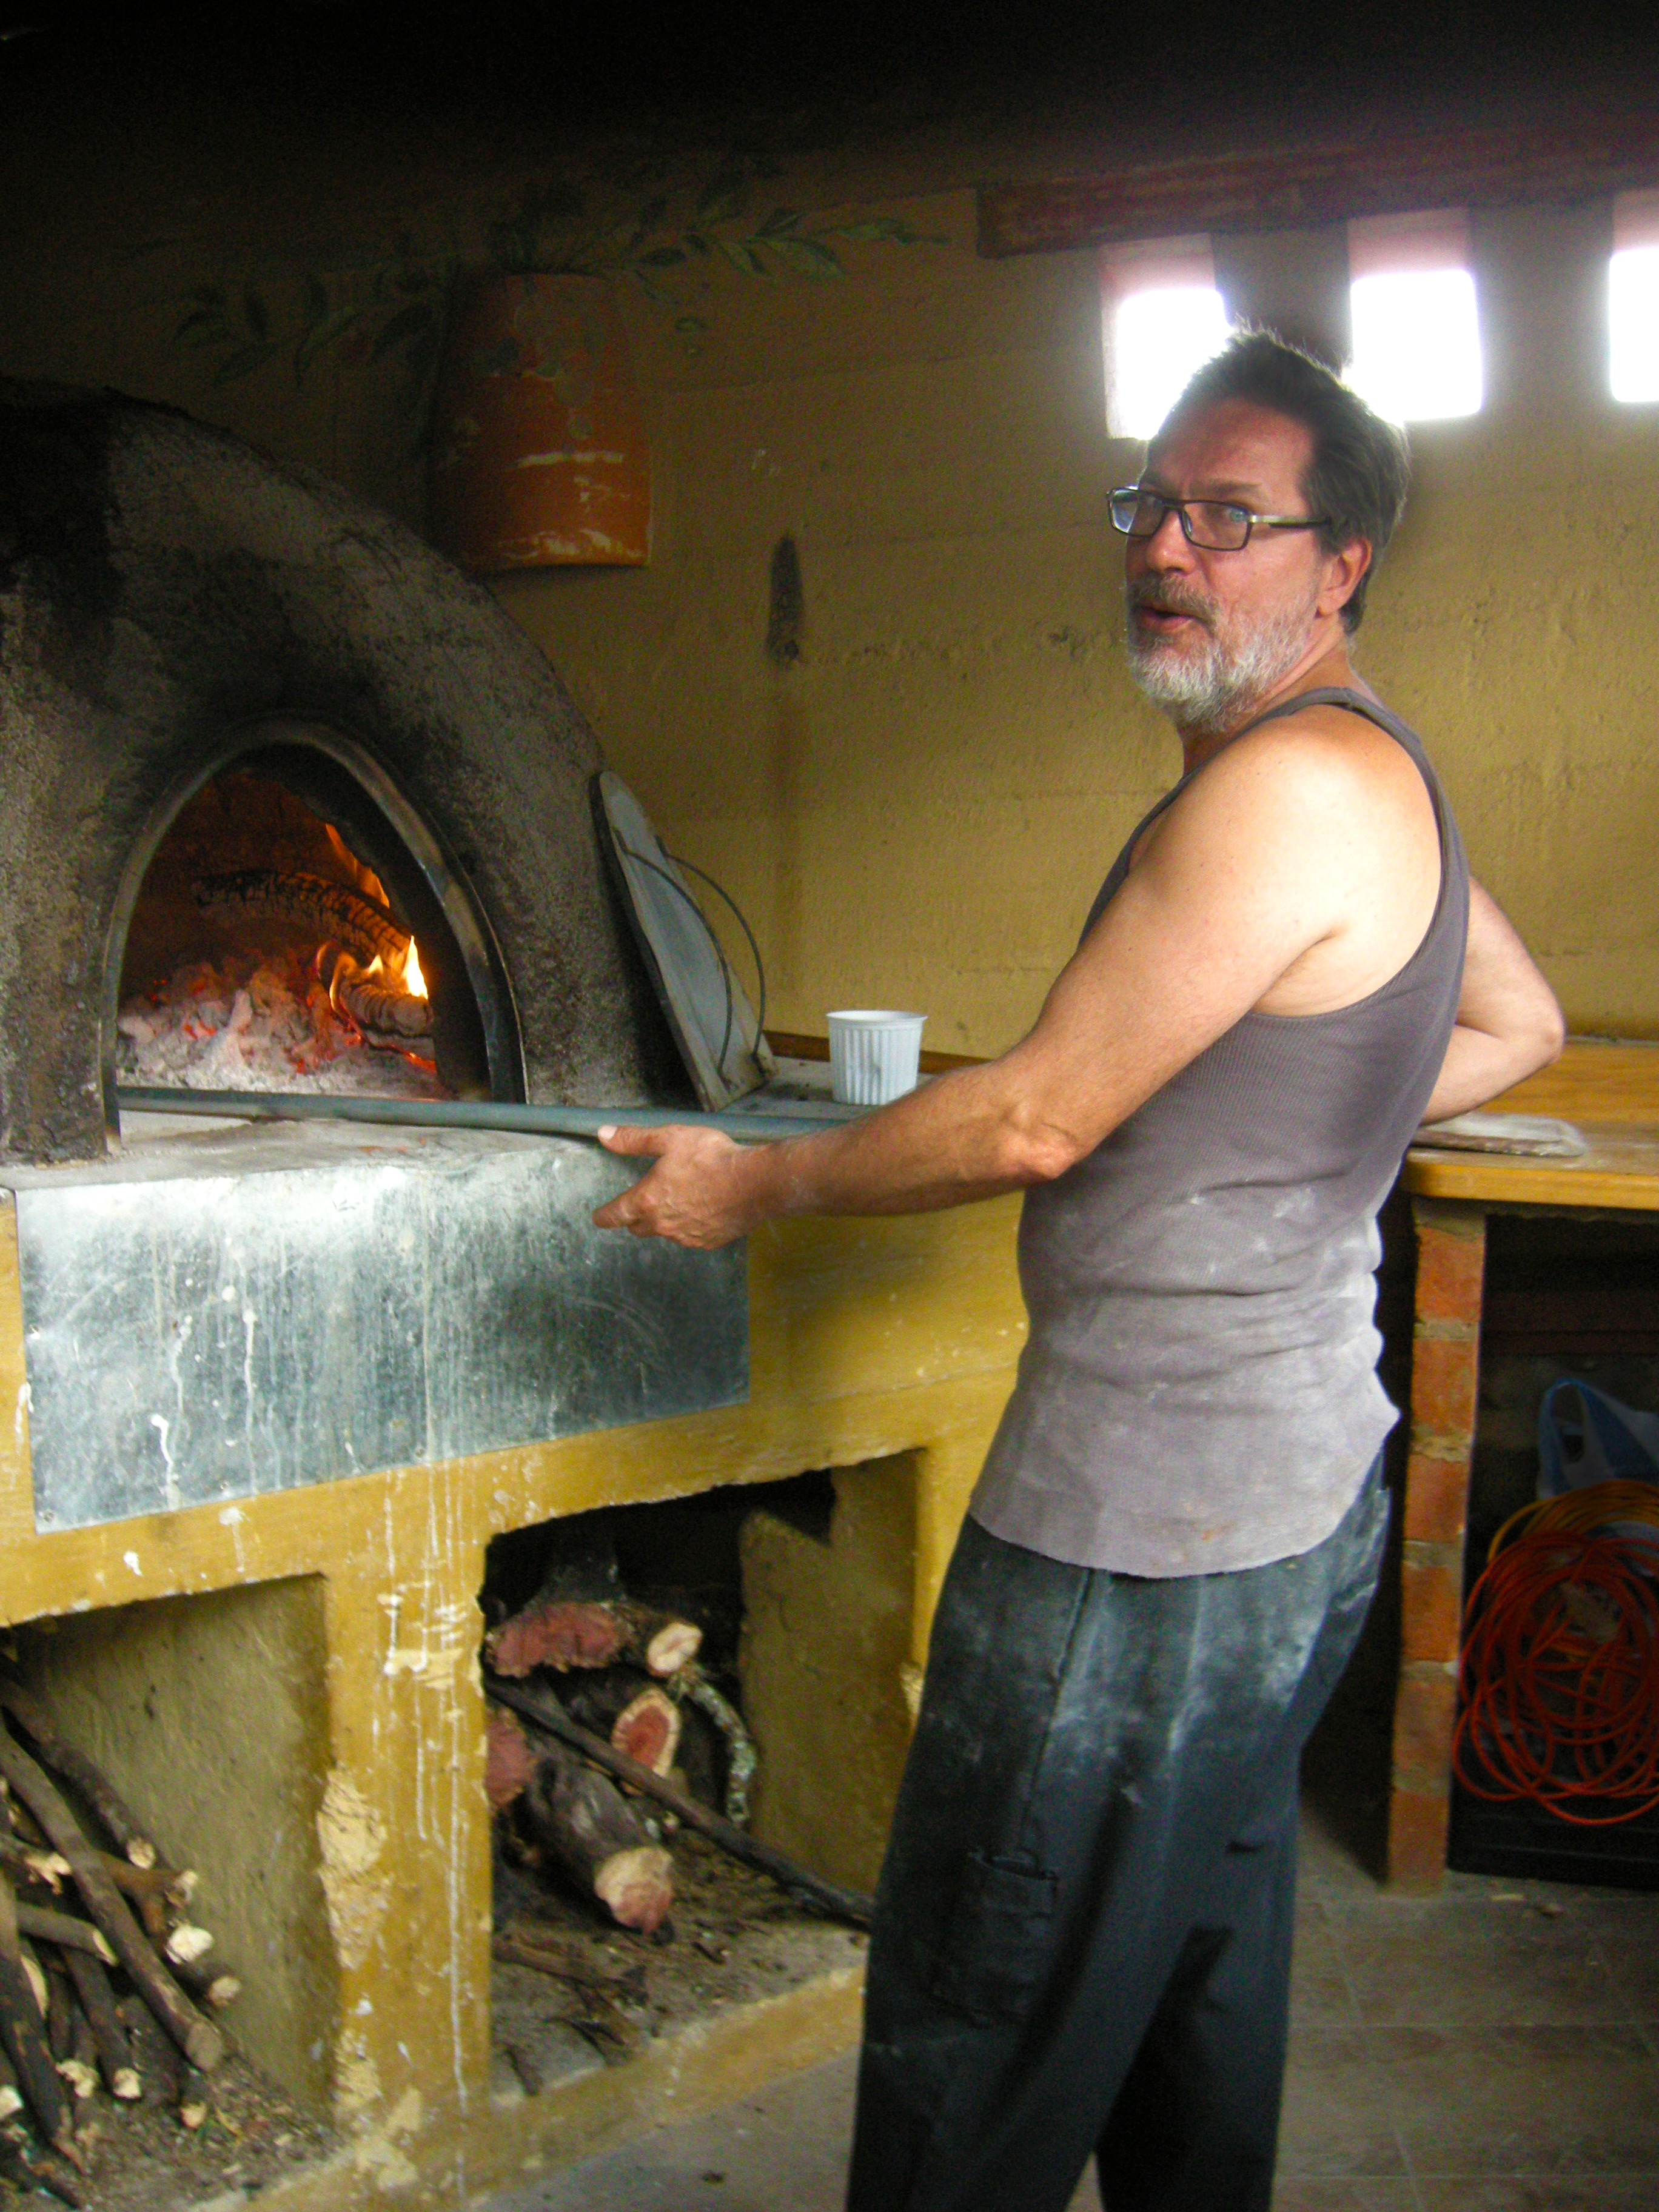 Franco fires up the Pizza oven at Mama Sylvia's